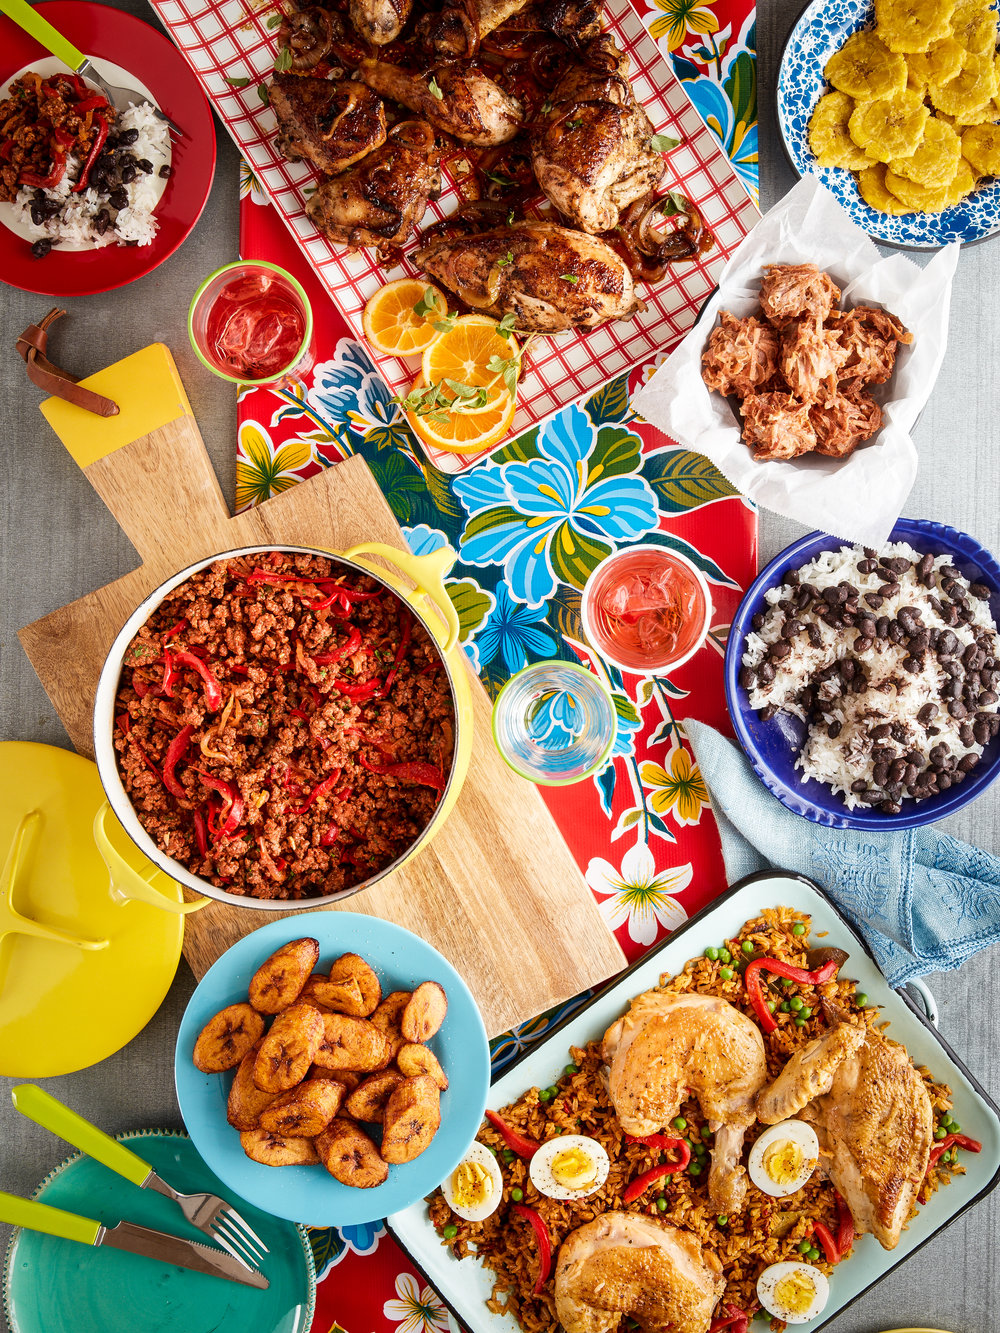 Cuba_Cookbook_Family_Meal_0395.jpg